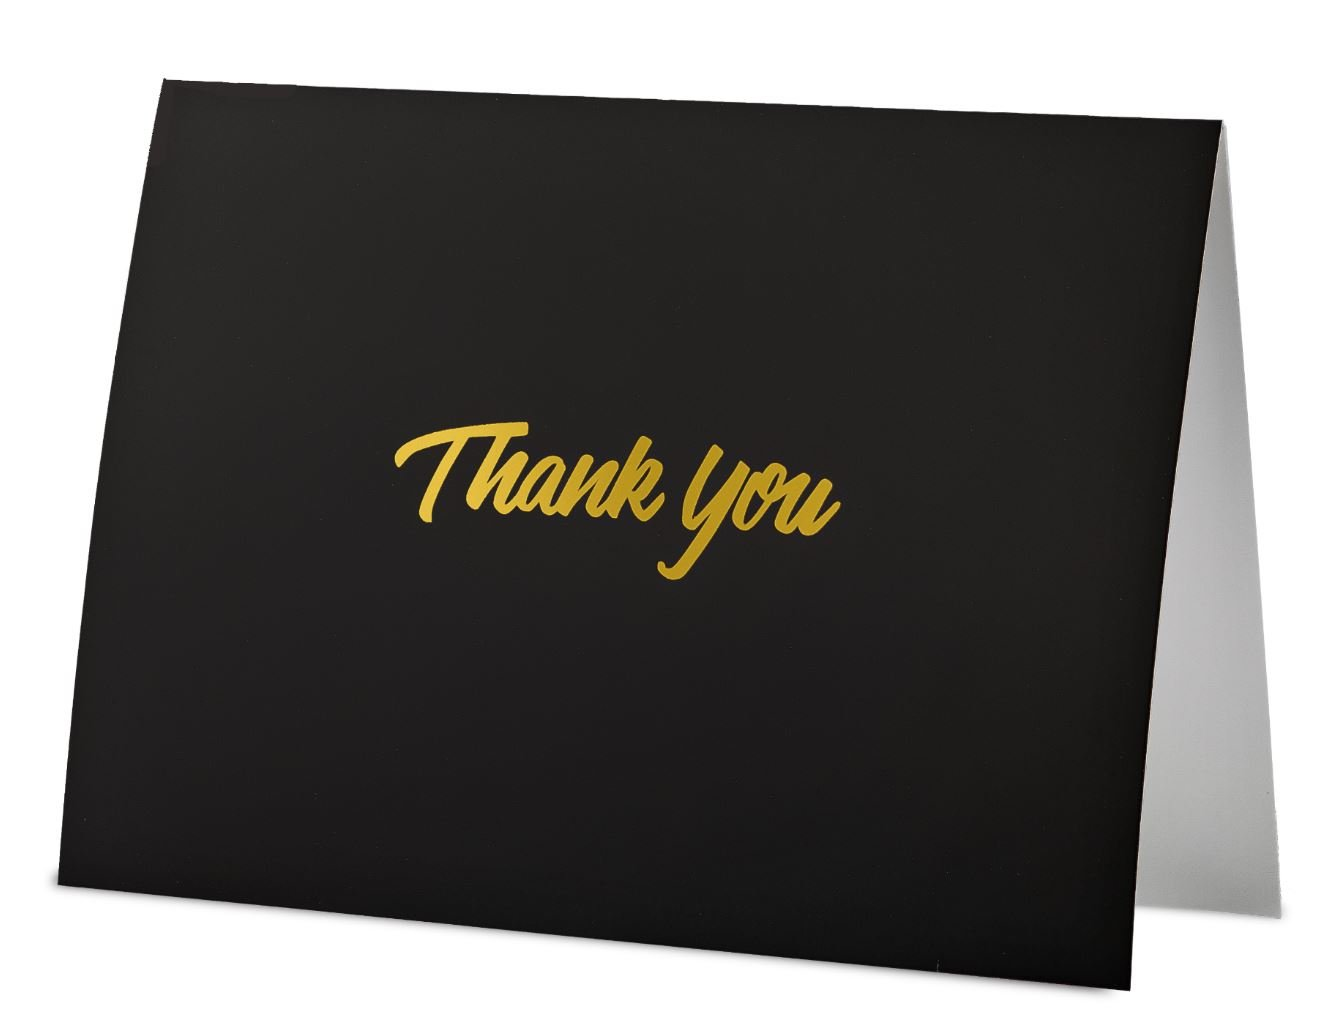 100 Thank You Cards with Envelopes - Thank You Notes, Black & Gold Foil - Blank Cards with Envelopes - For Business, Wedding, Graduation, Baby/Bridal Shower, Funeral, Professional Thank You Cards Bulk by FORTIVO (Image #3)